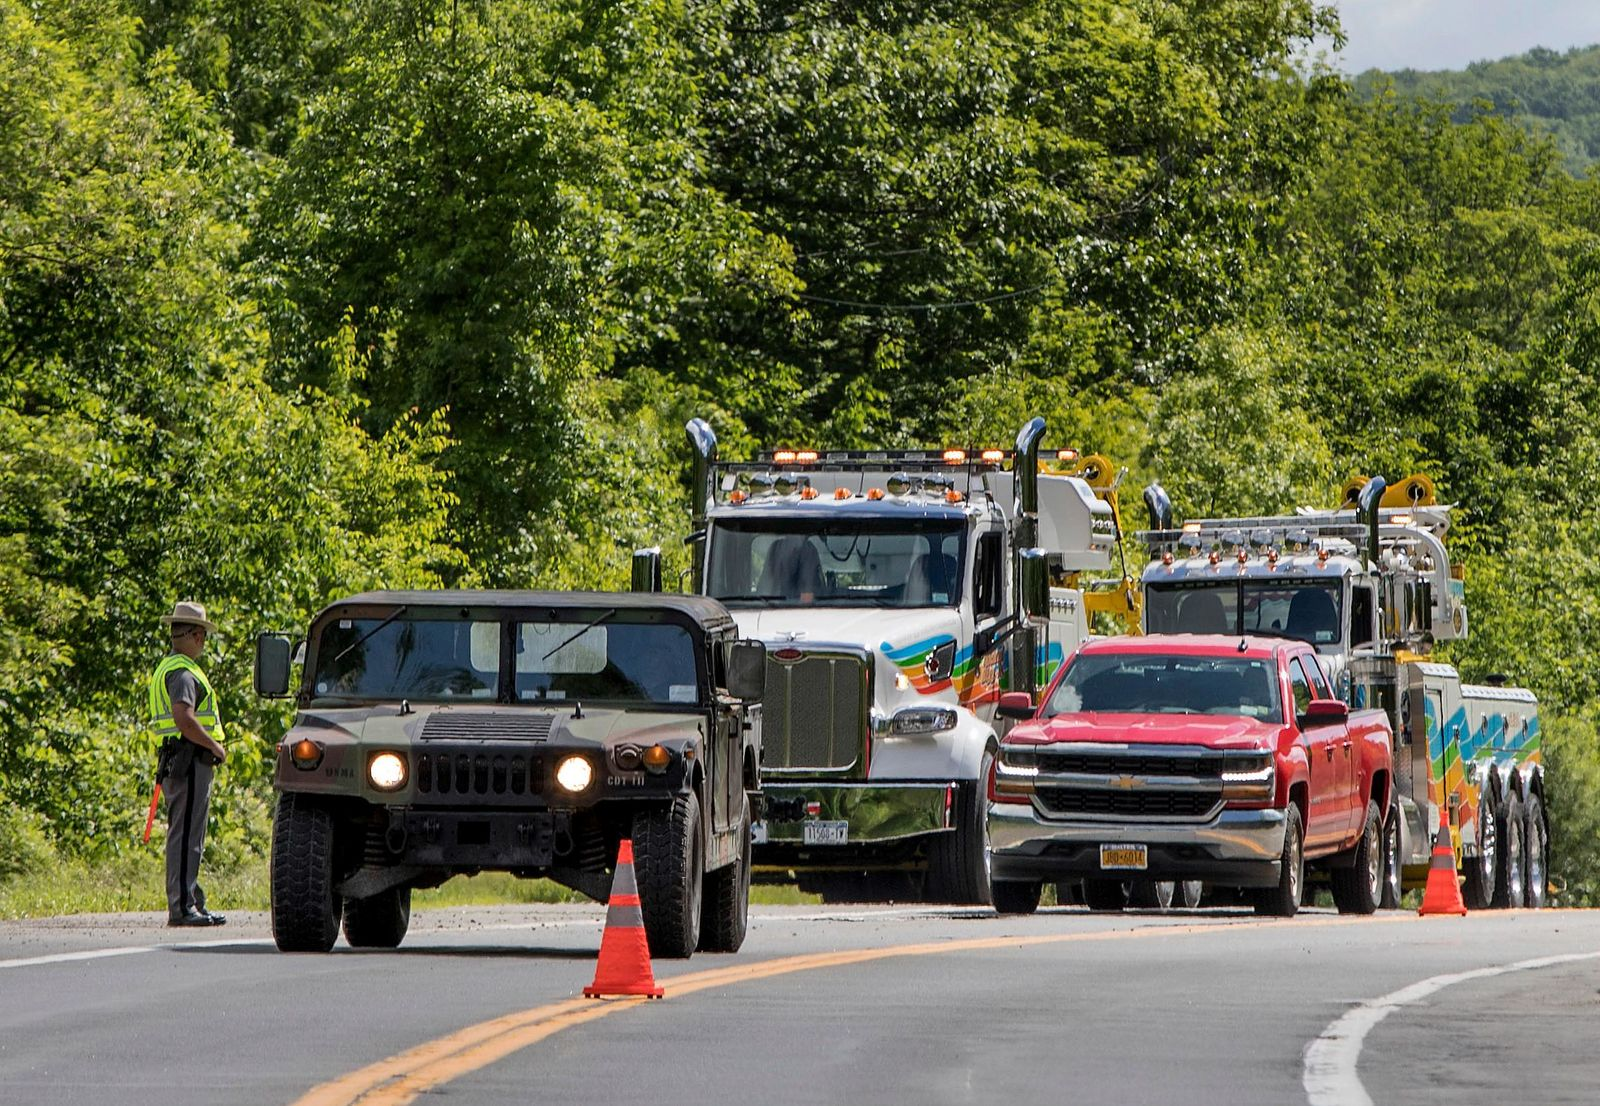 Military police direct traffic along Route 293 near the site where an armored personnel vehicle overturned killing at least one person, Thursday, June 6, 2019, in Cornwall, N.Y. (AP Photo/Allyse Pulliam)